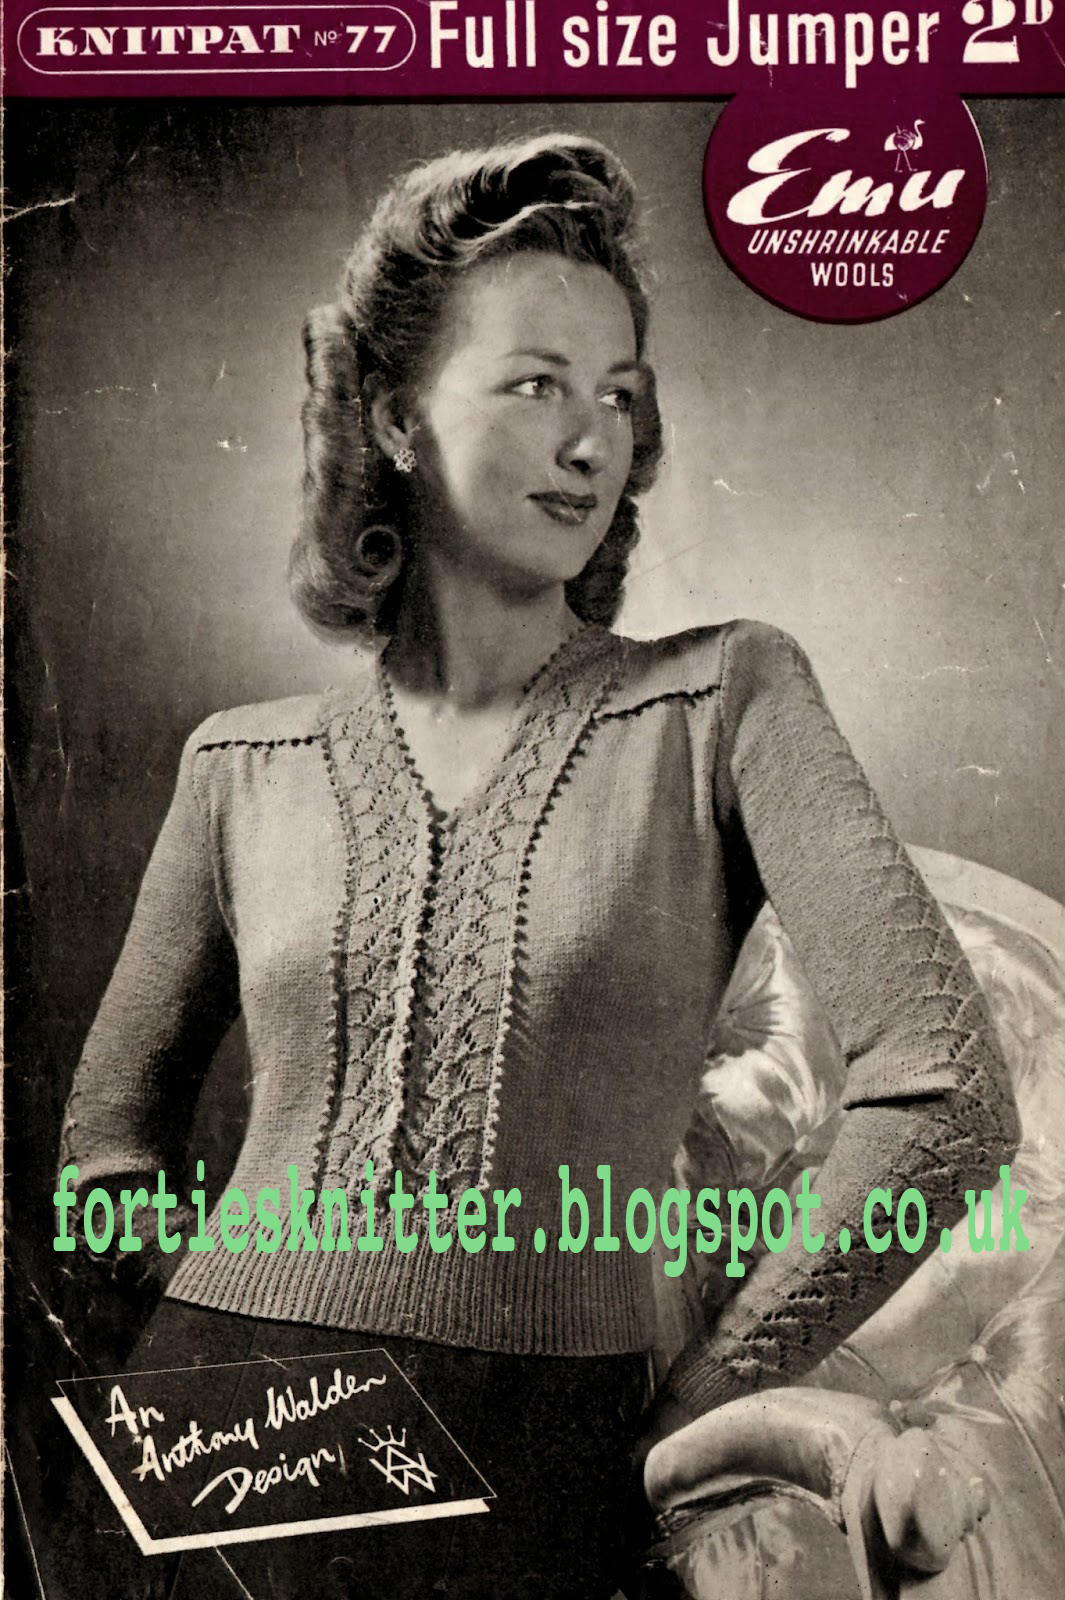 1940's Knitting - Knipat No.77 Full Size Jumper free pattern